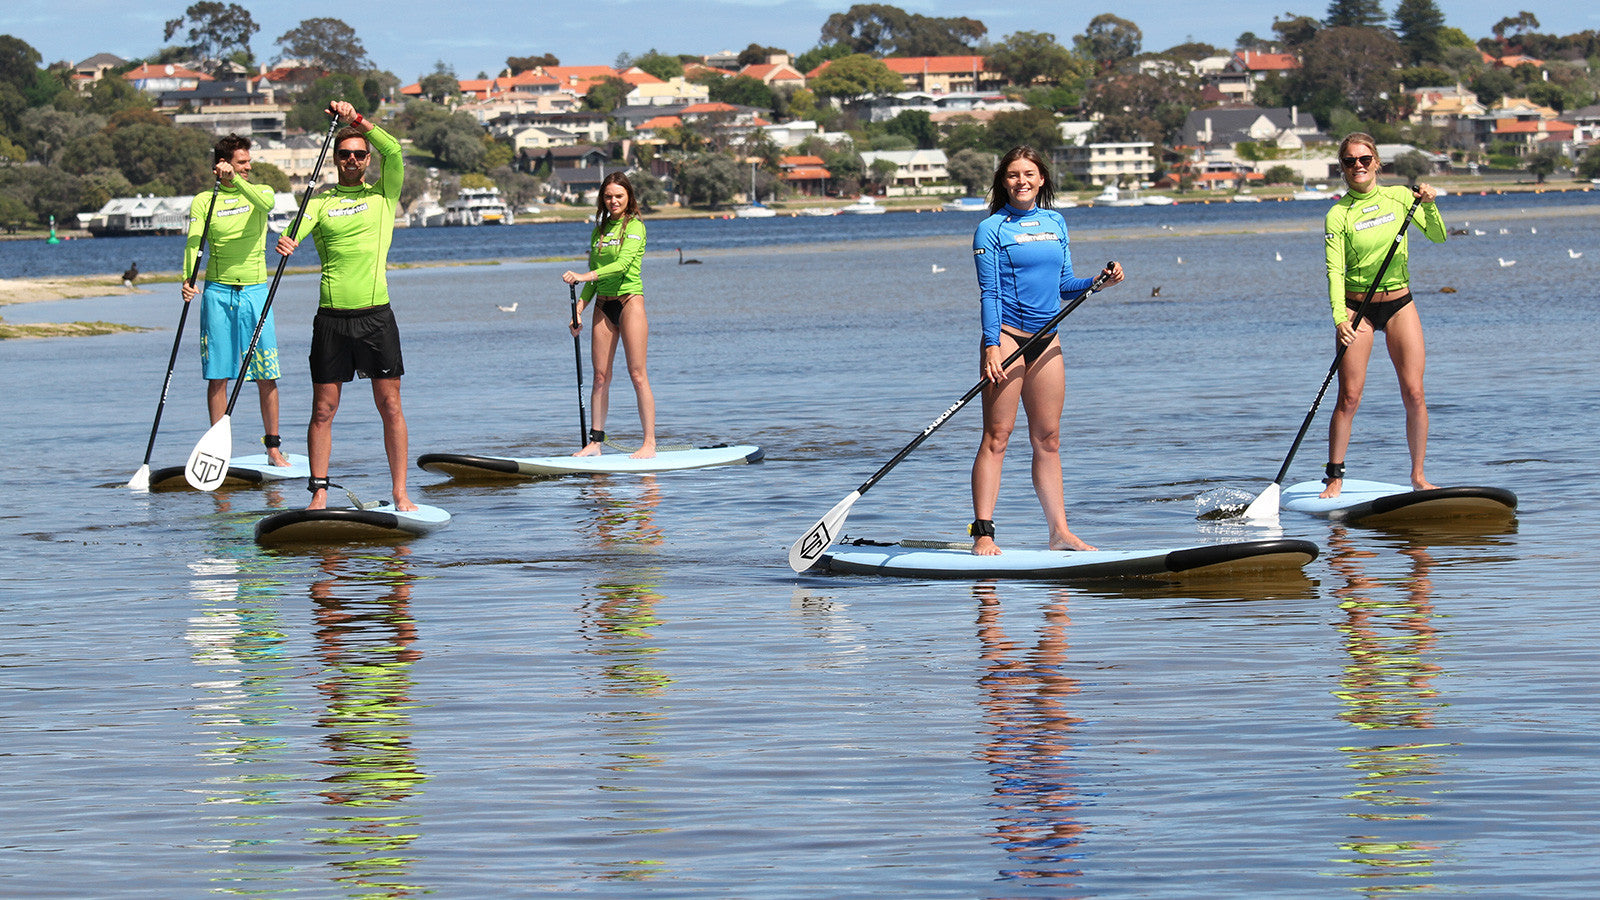 TOP 5 REASONS TO GET STAND UP PADDLE LESSONS